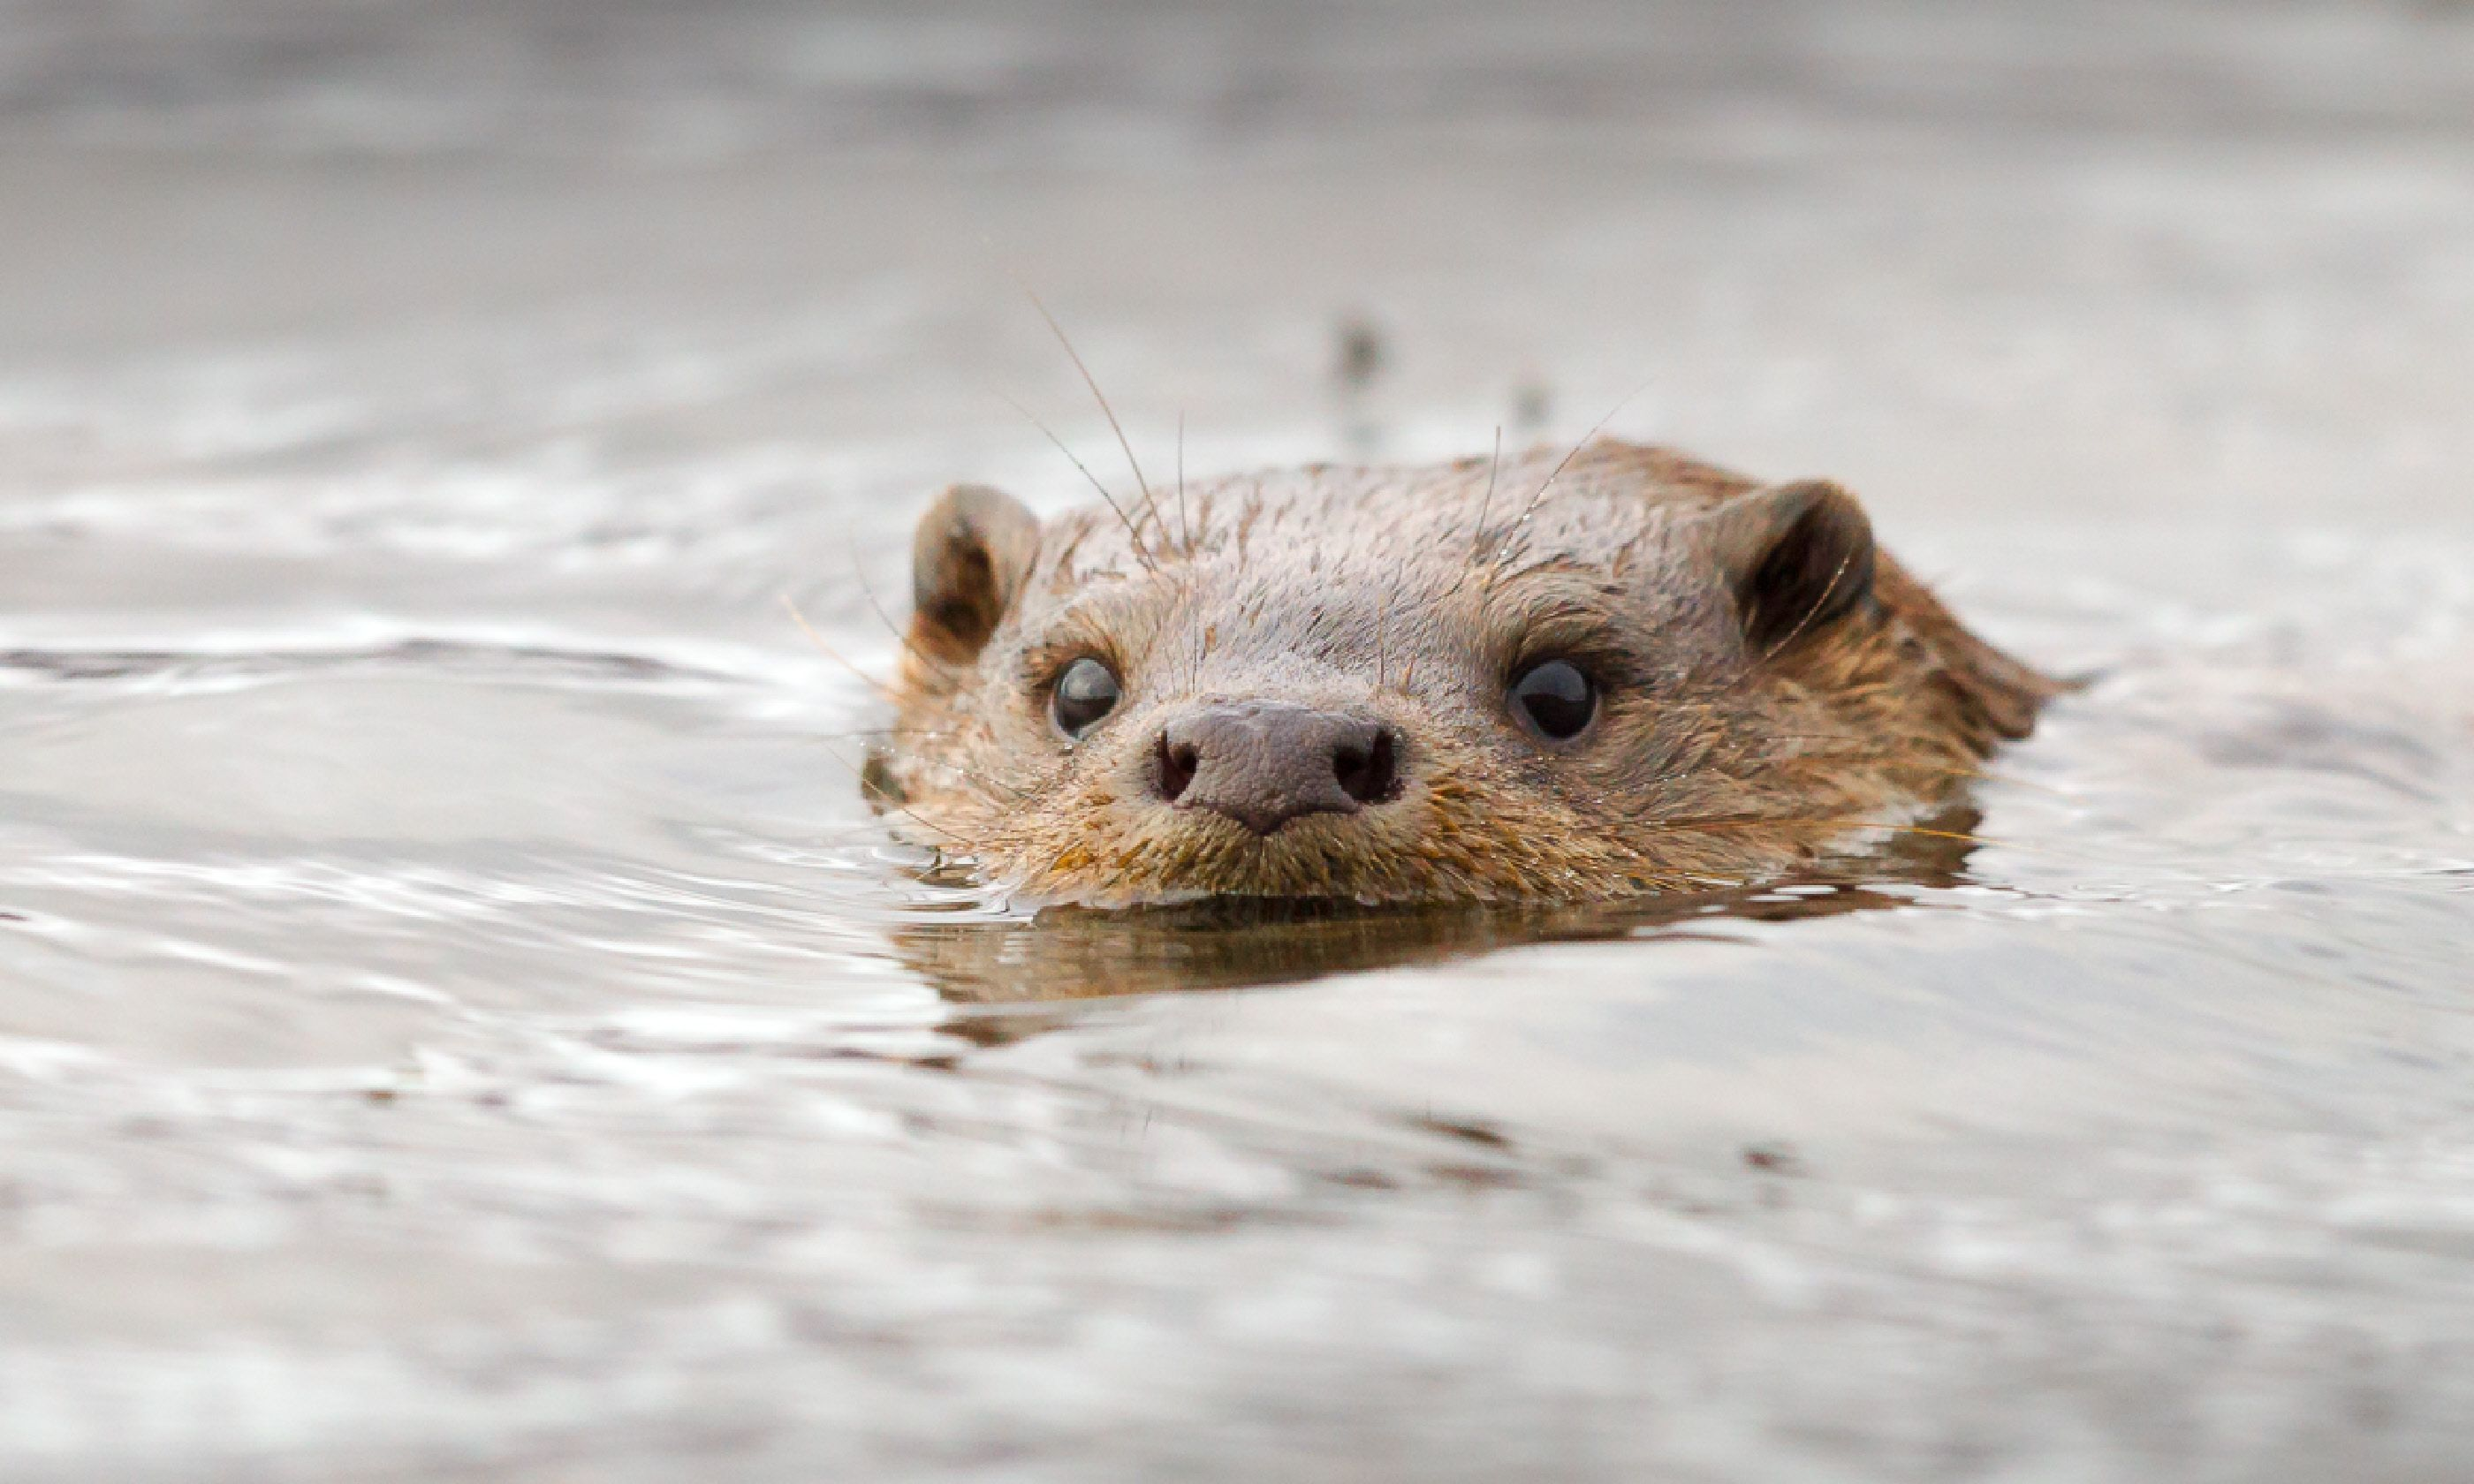 Swimming otter, Scotland (Shutterstock)